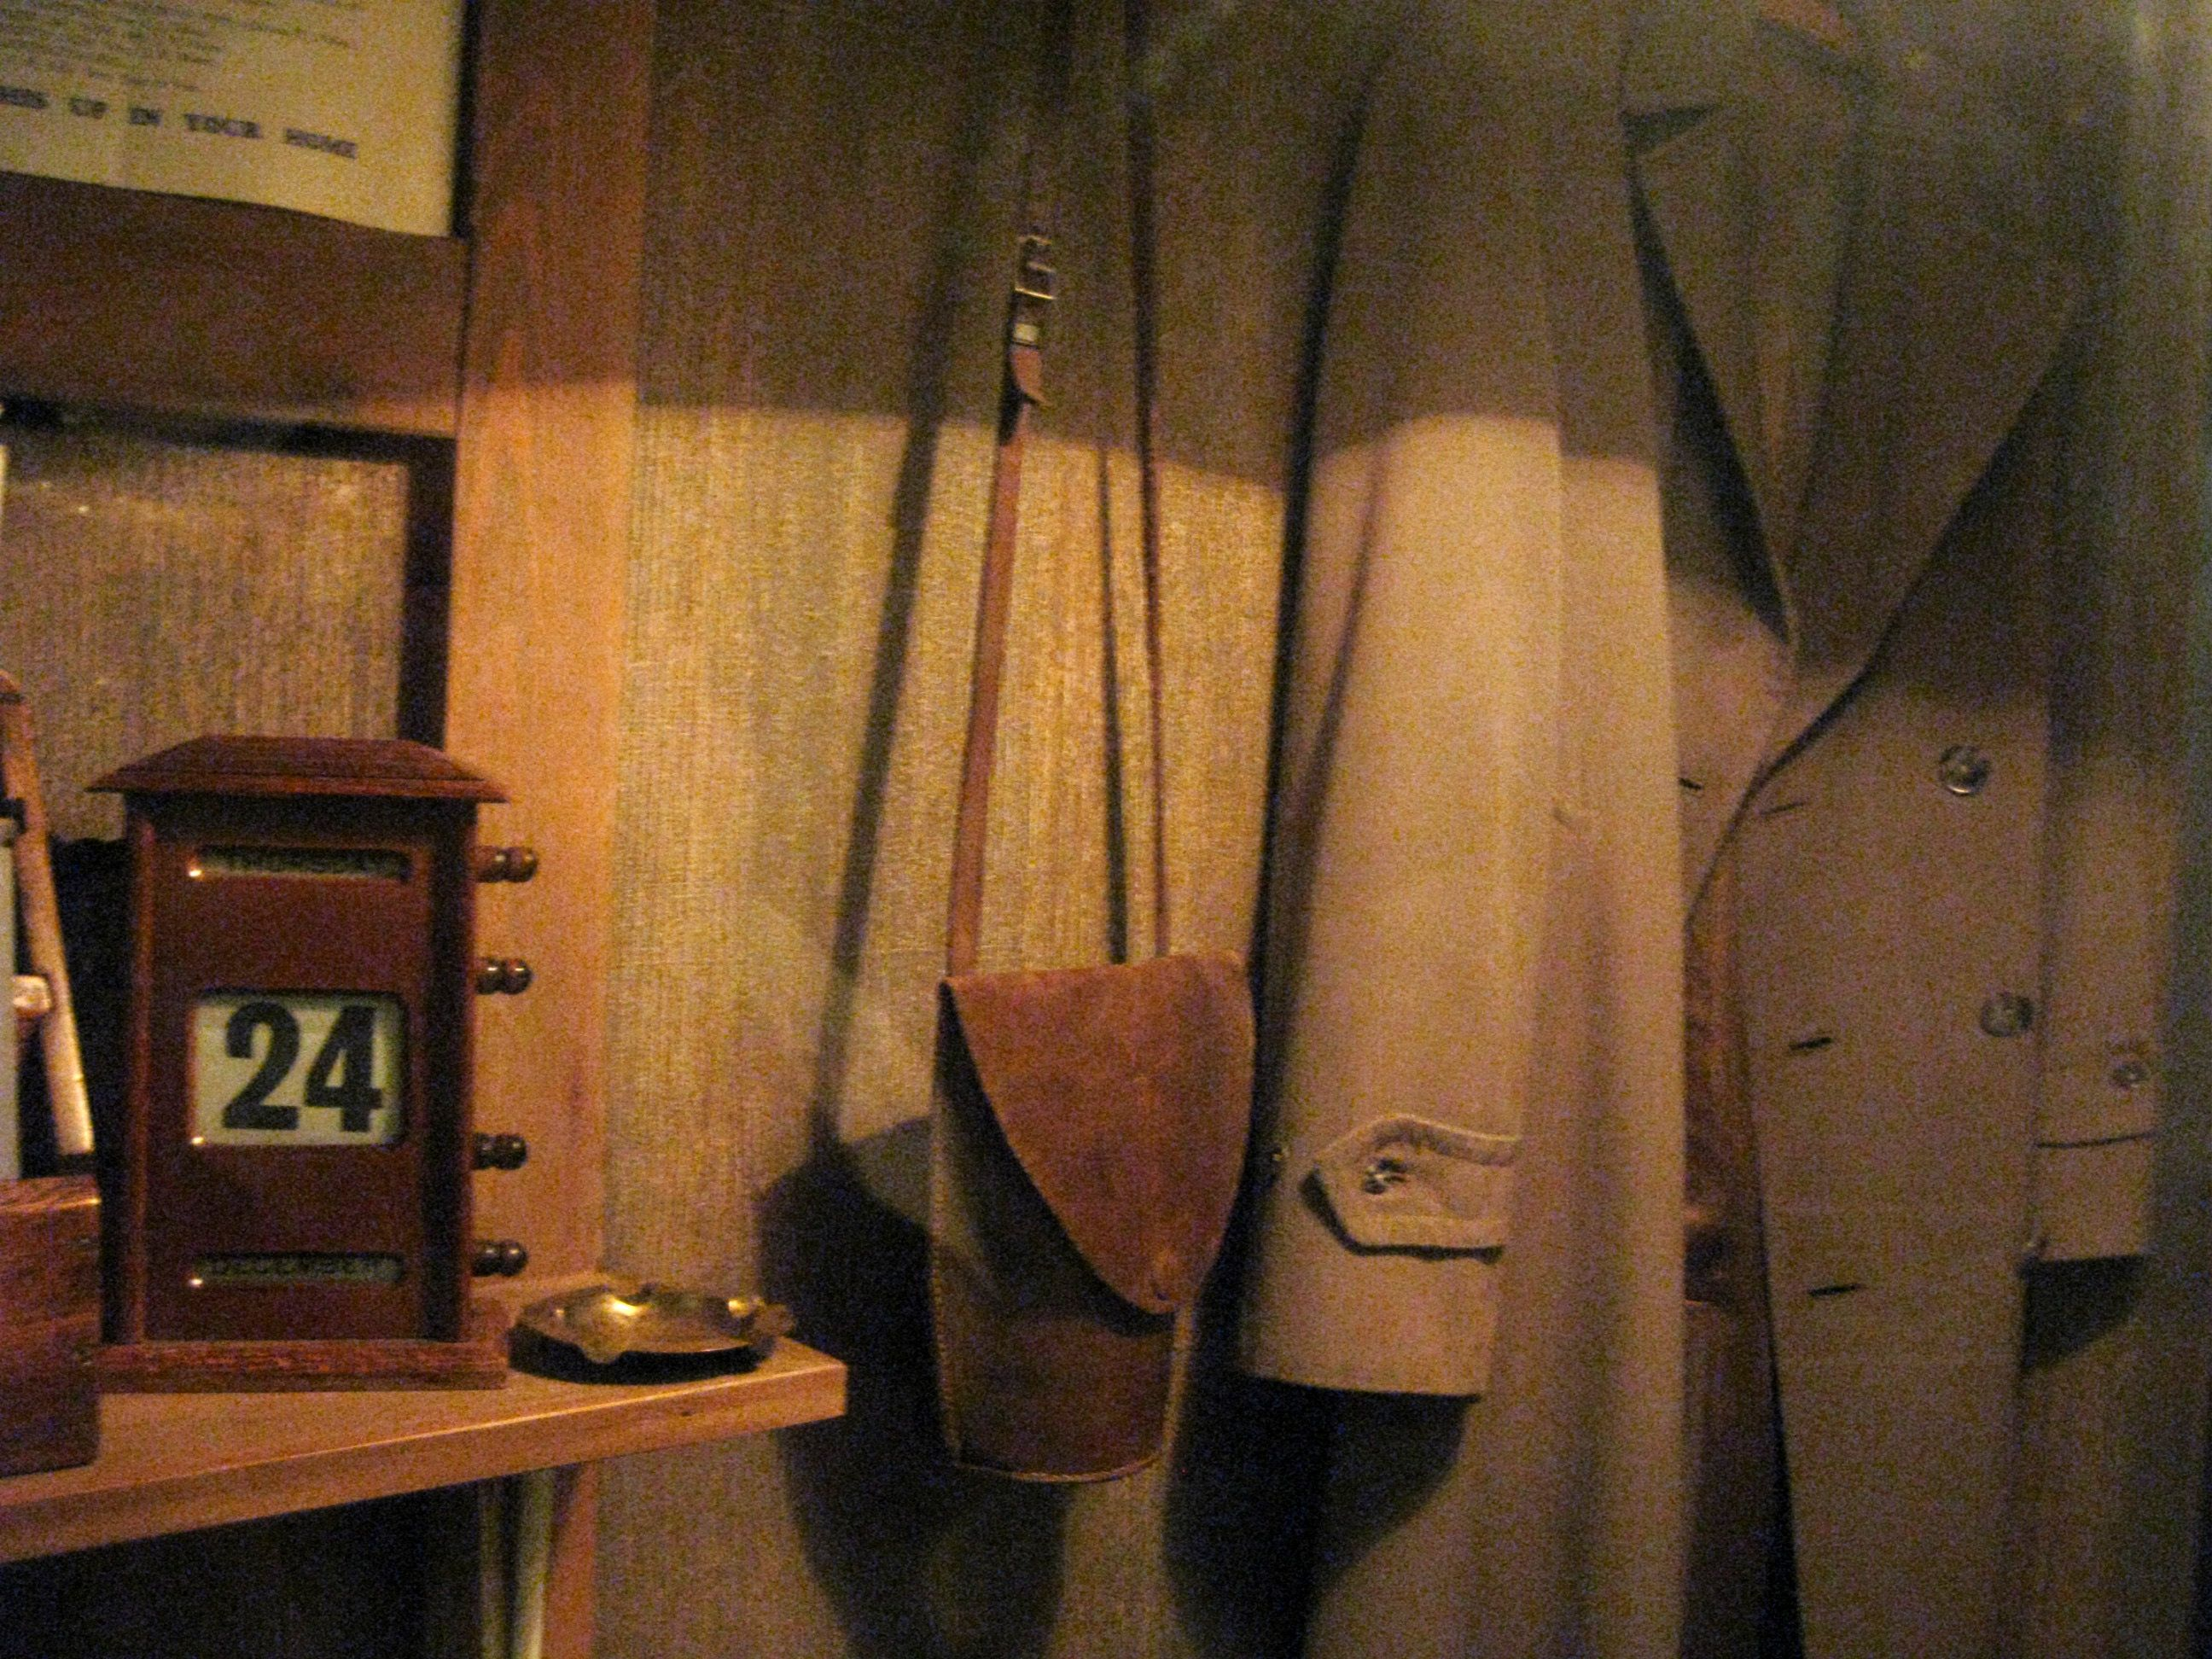 World War Two coat and paraphernalia. #forties #history #worldwartwo #wwii #londonblitz #homefront